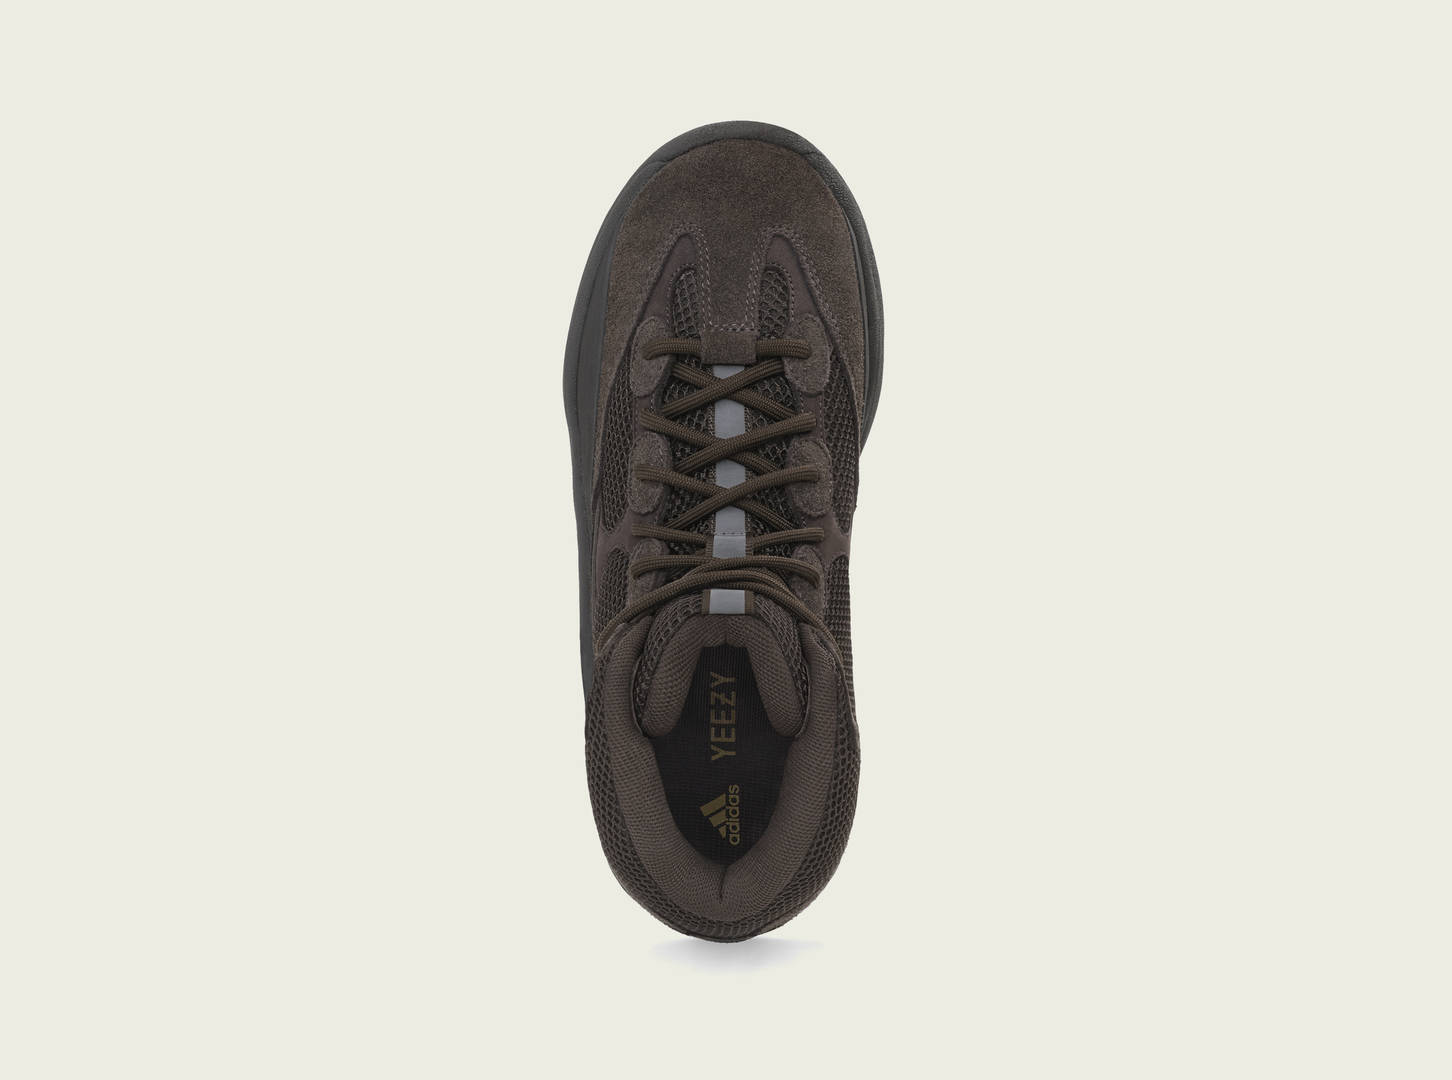 8a151f76a65f7 Adidas   Kanye West Unveil The Yeezy Desert Boot